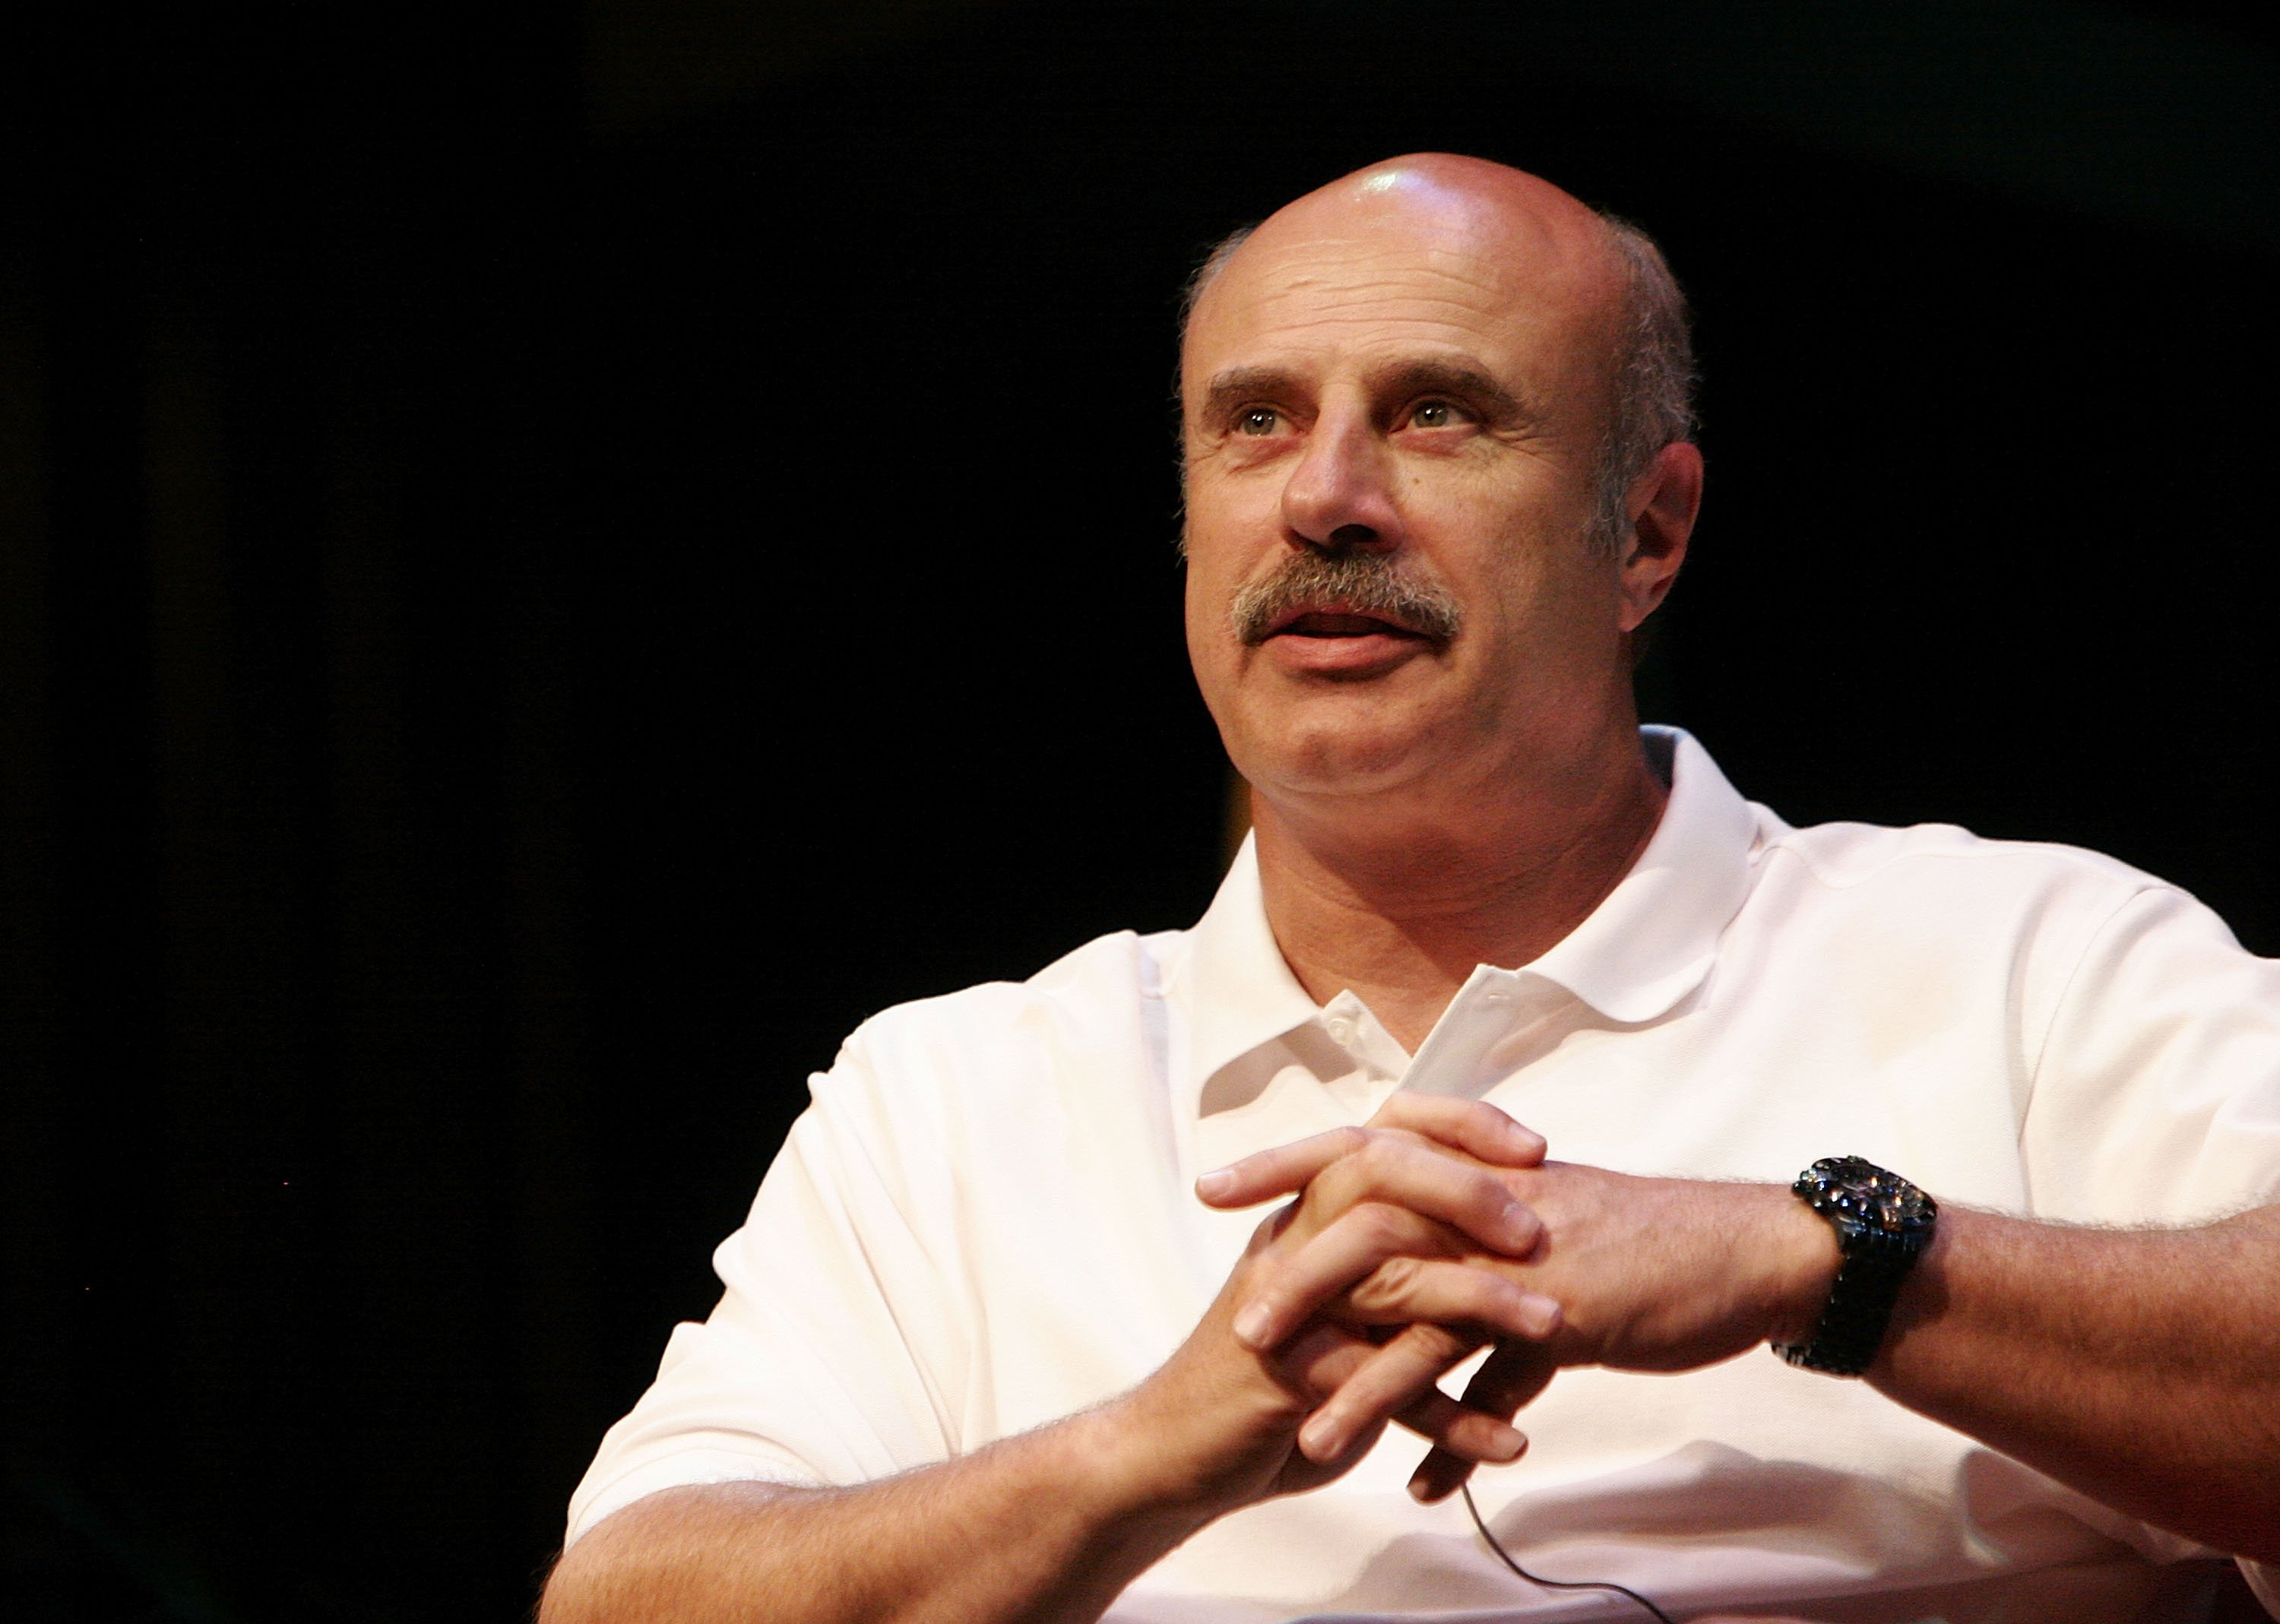 Dr. Phil McGraw attends the 12th Annual L.A. Times Festival of Books in Los Angeles on April 29, 2007 | Photo: Getty Images